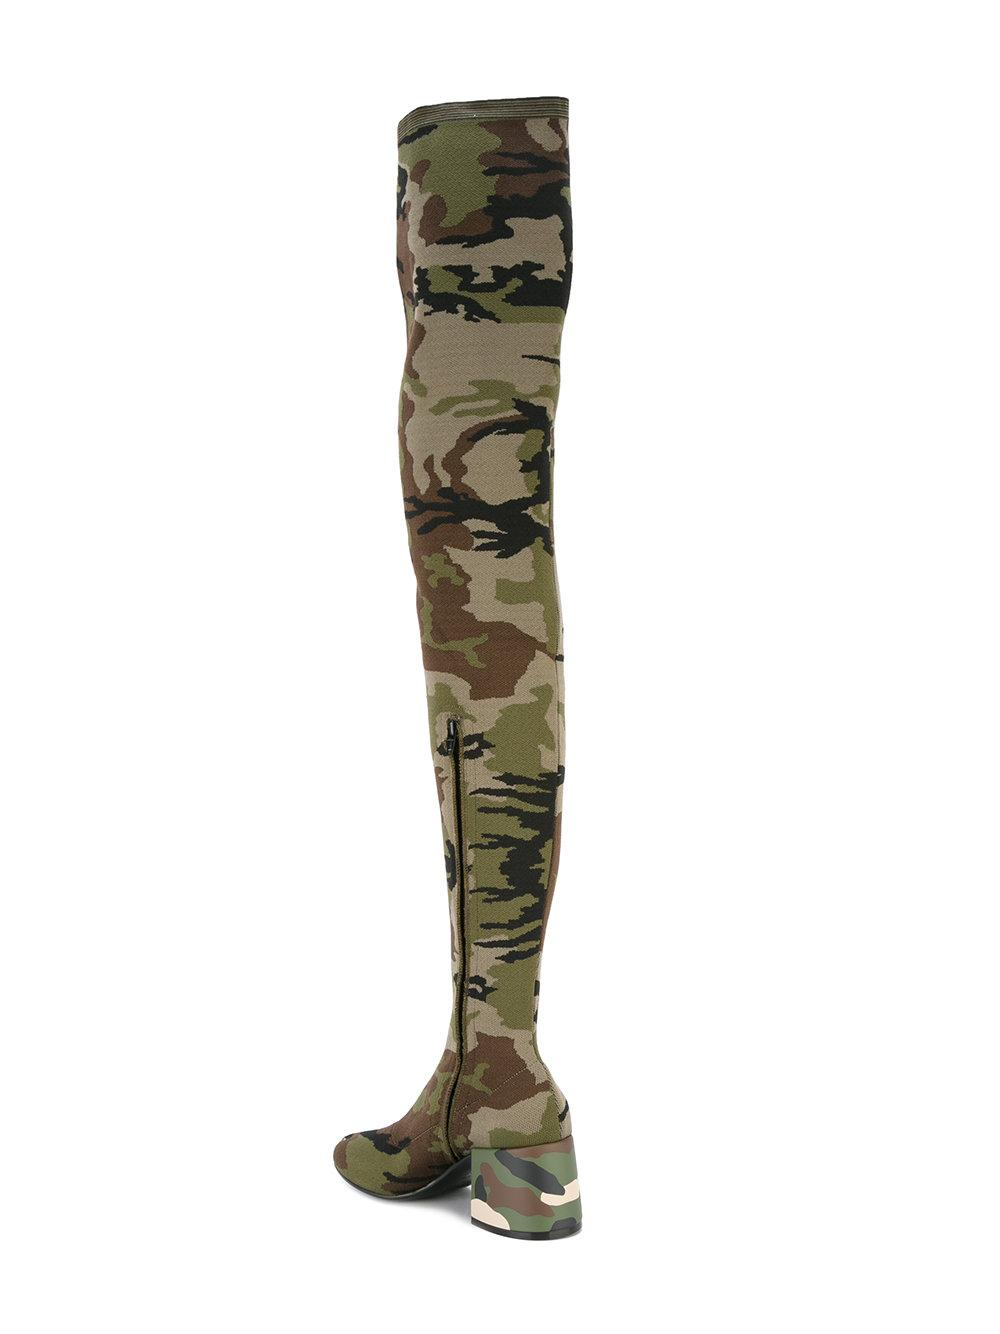 MM6 by Maison Martin Margiela Leather Camouflage Boots in Green